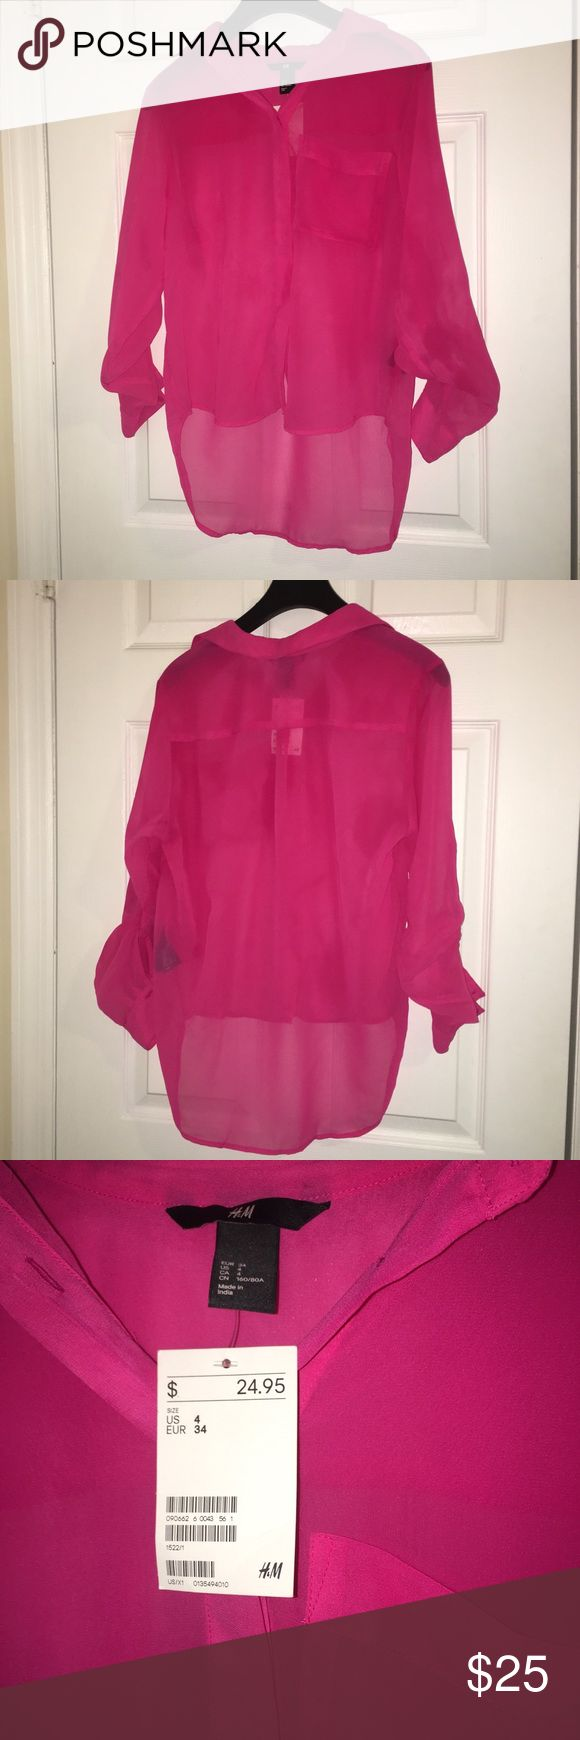 H&M Sheer Hot Pink Blouse H&M Sheer Hot Pink Blouse - Brand New with Tags - Size 4 H&M Tops Blouses